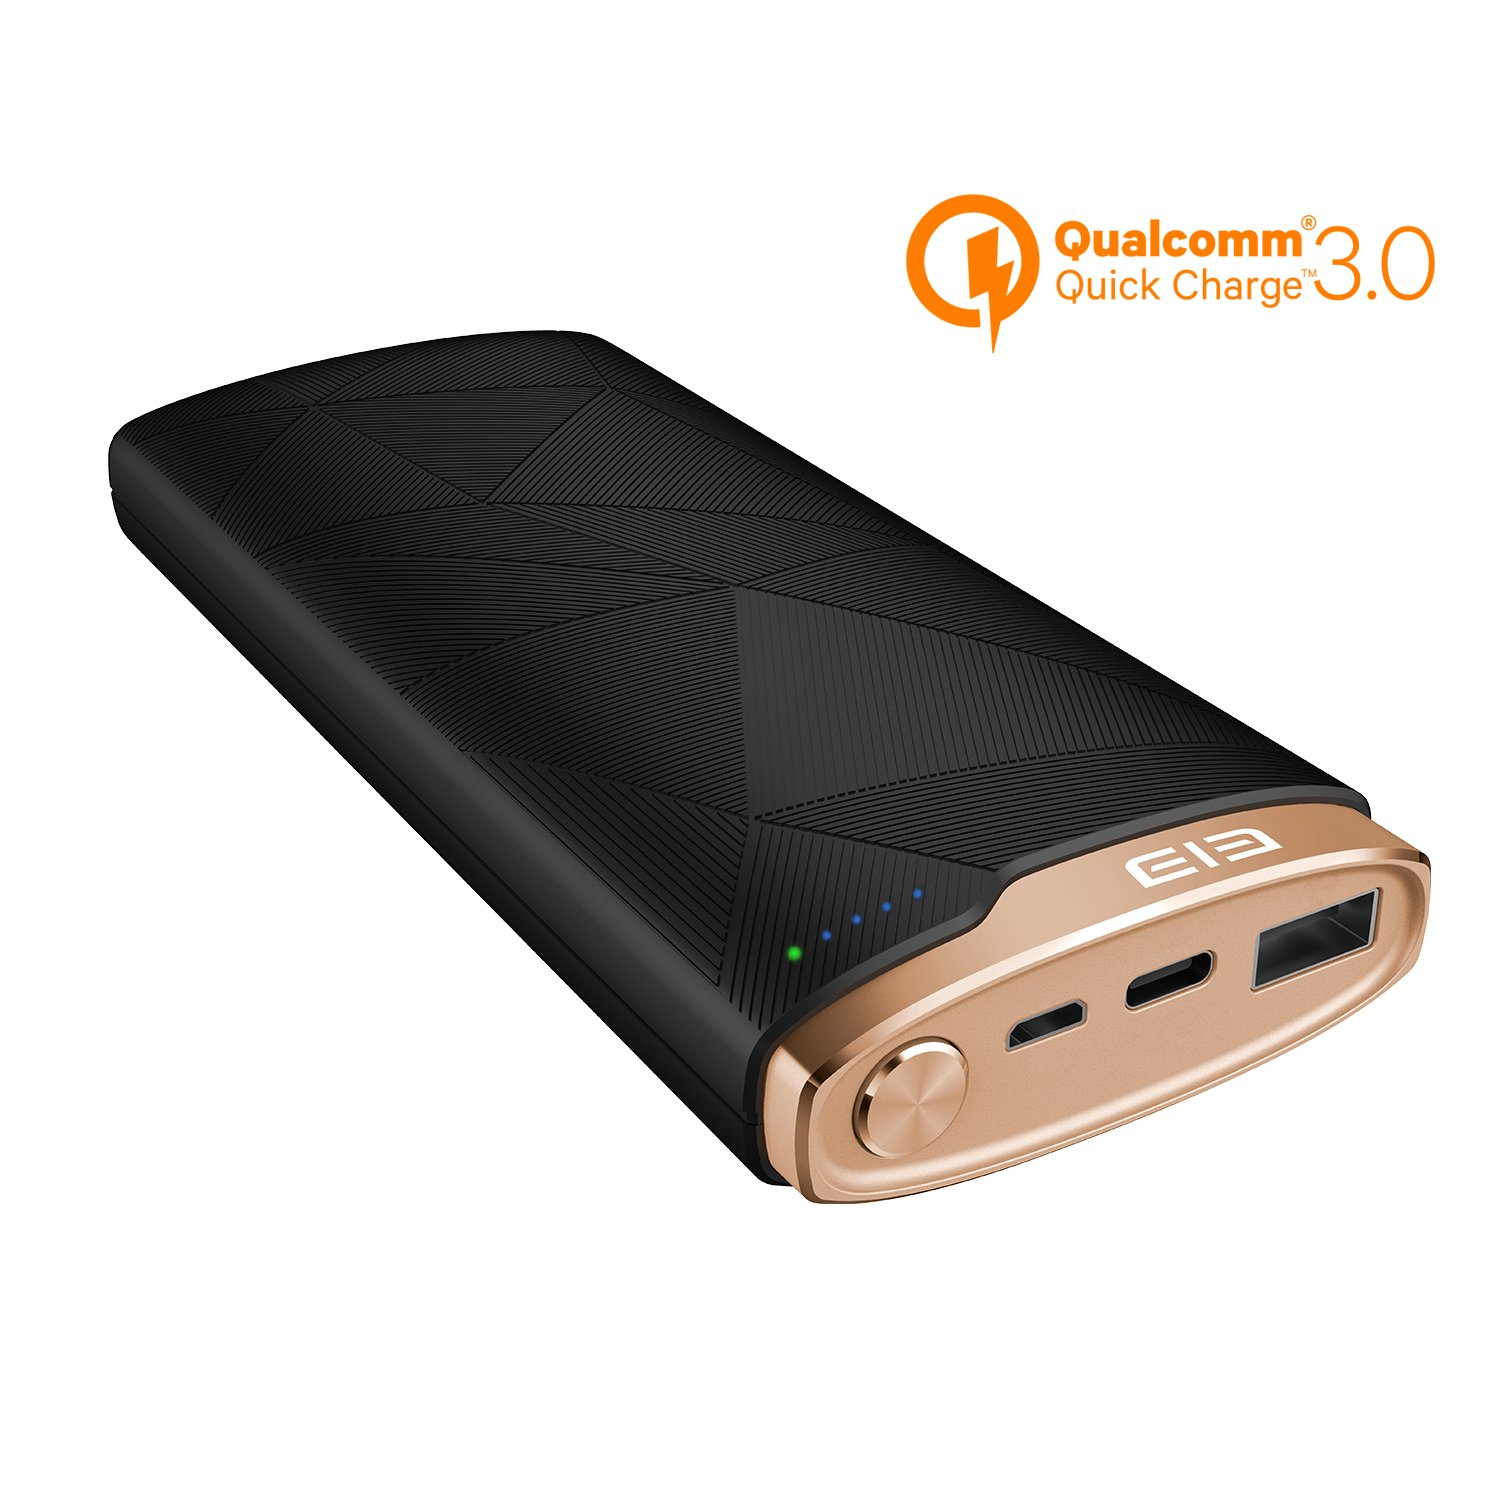 (Qualcomm Certified Quick Charge 3.0) MGcool 16000mAh Portable Charger,LED Indicator Power Bank, USB-C Port, Backwards Compatibility, External Battery Pack for Long-timeTravel, Business Trip,Camping